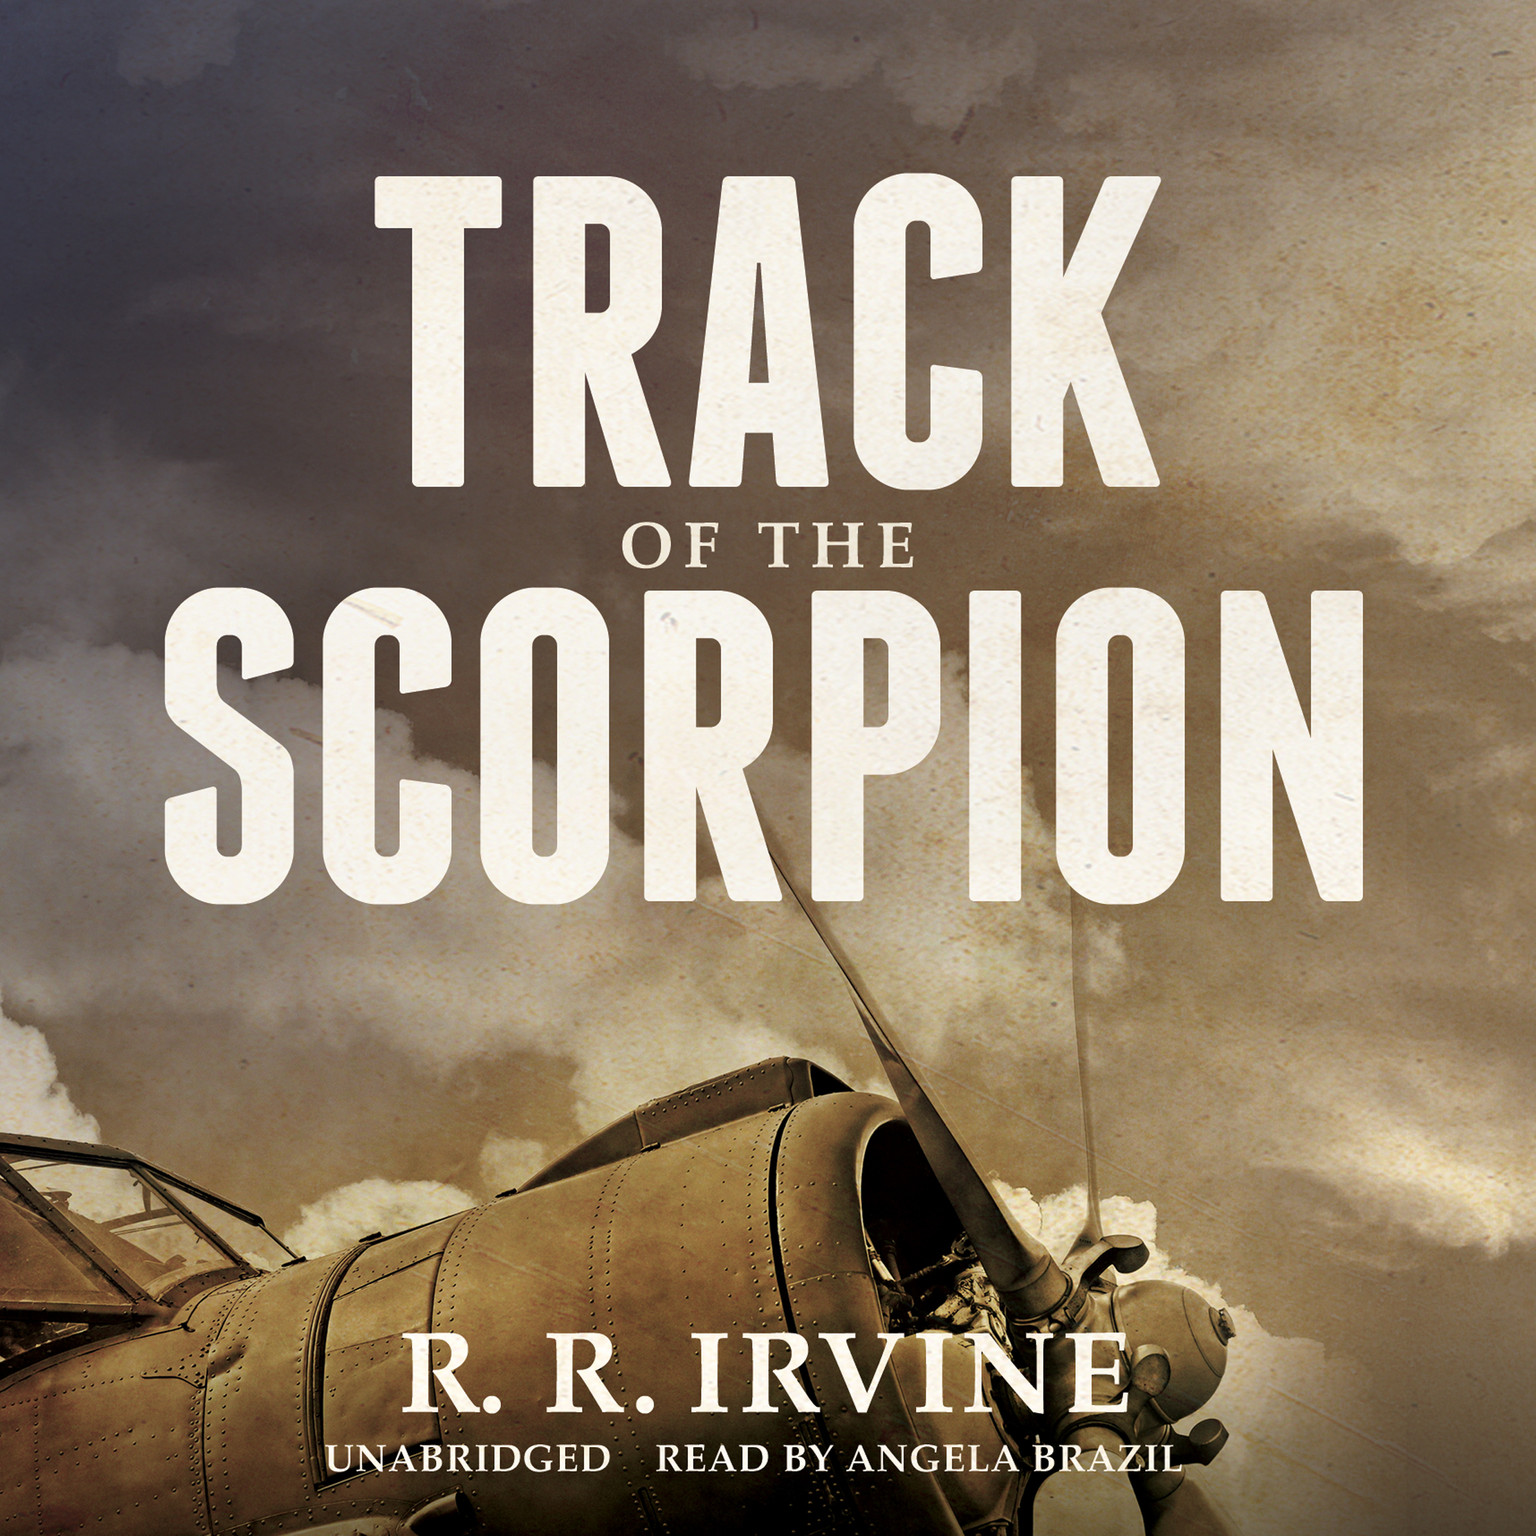 Printable Track of the Scorpion Audiobook Cover Art